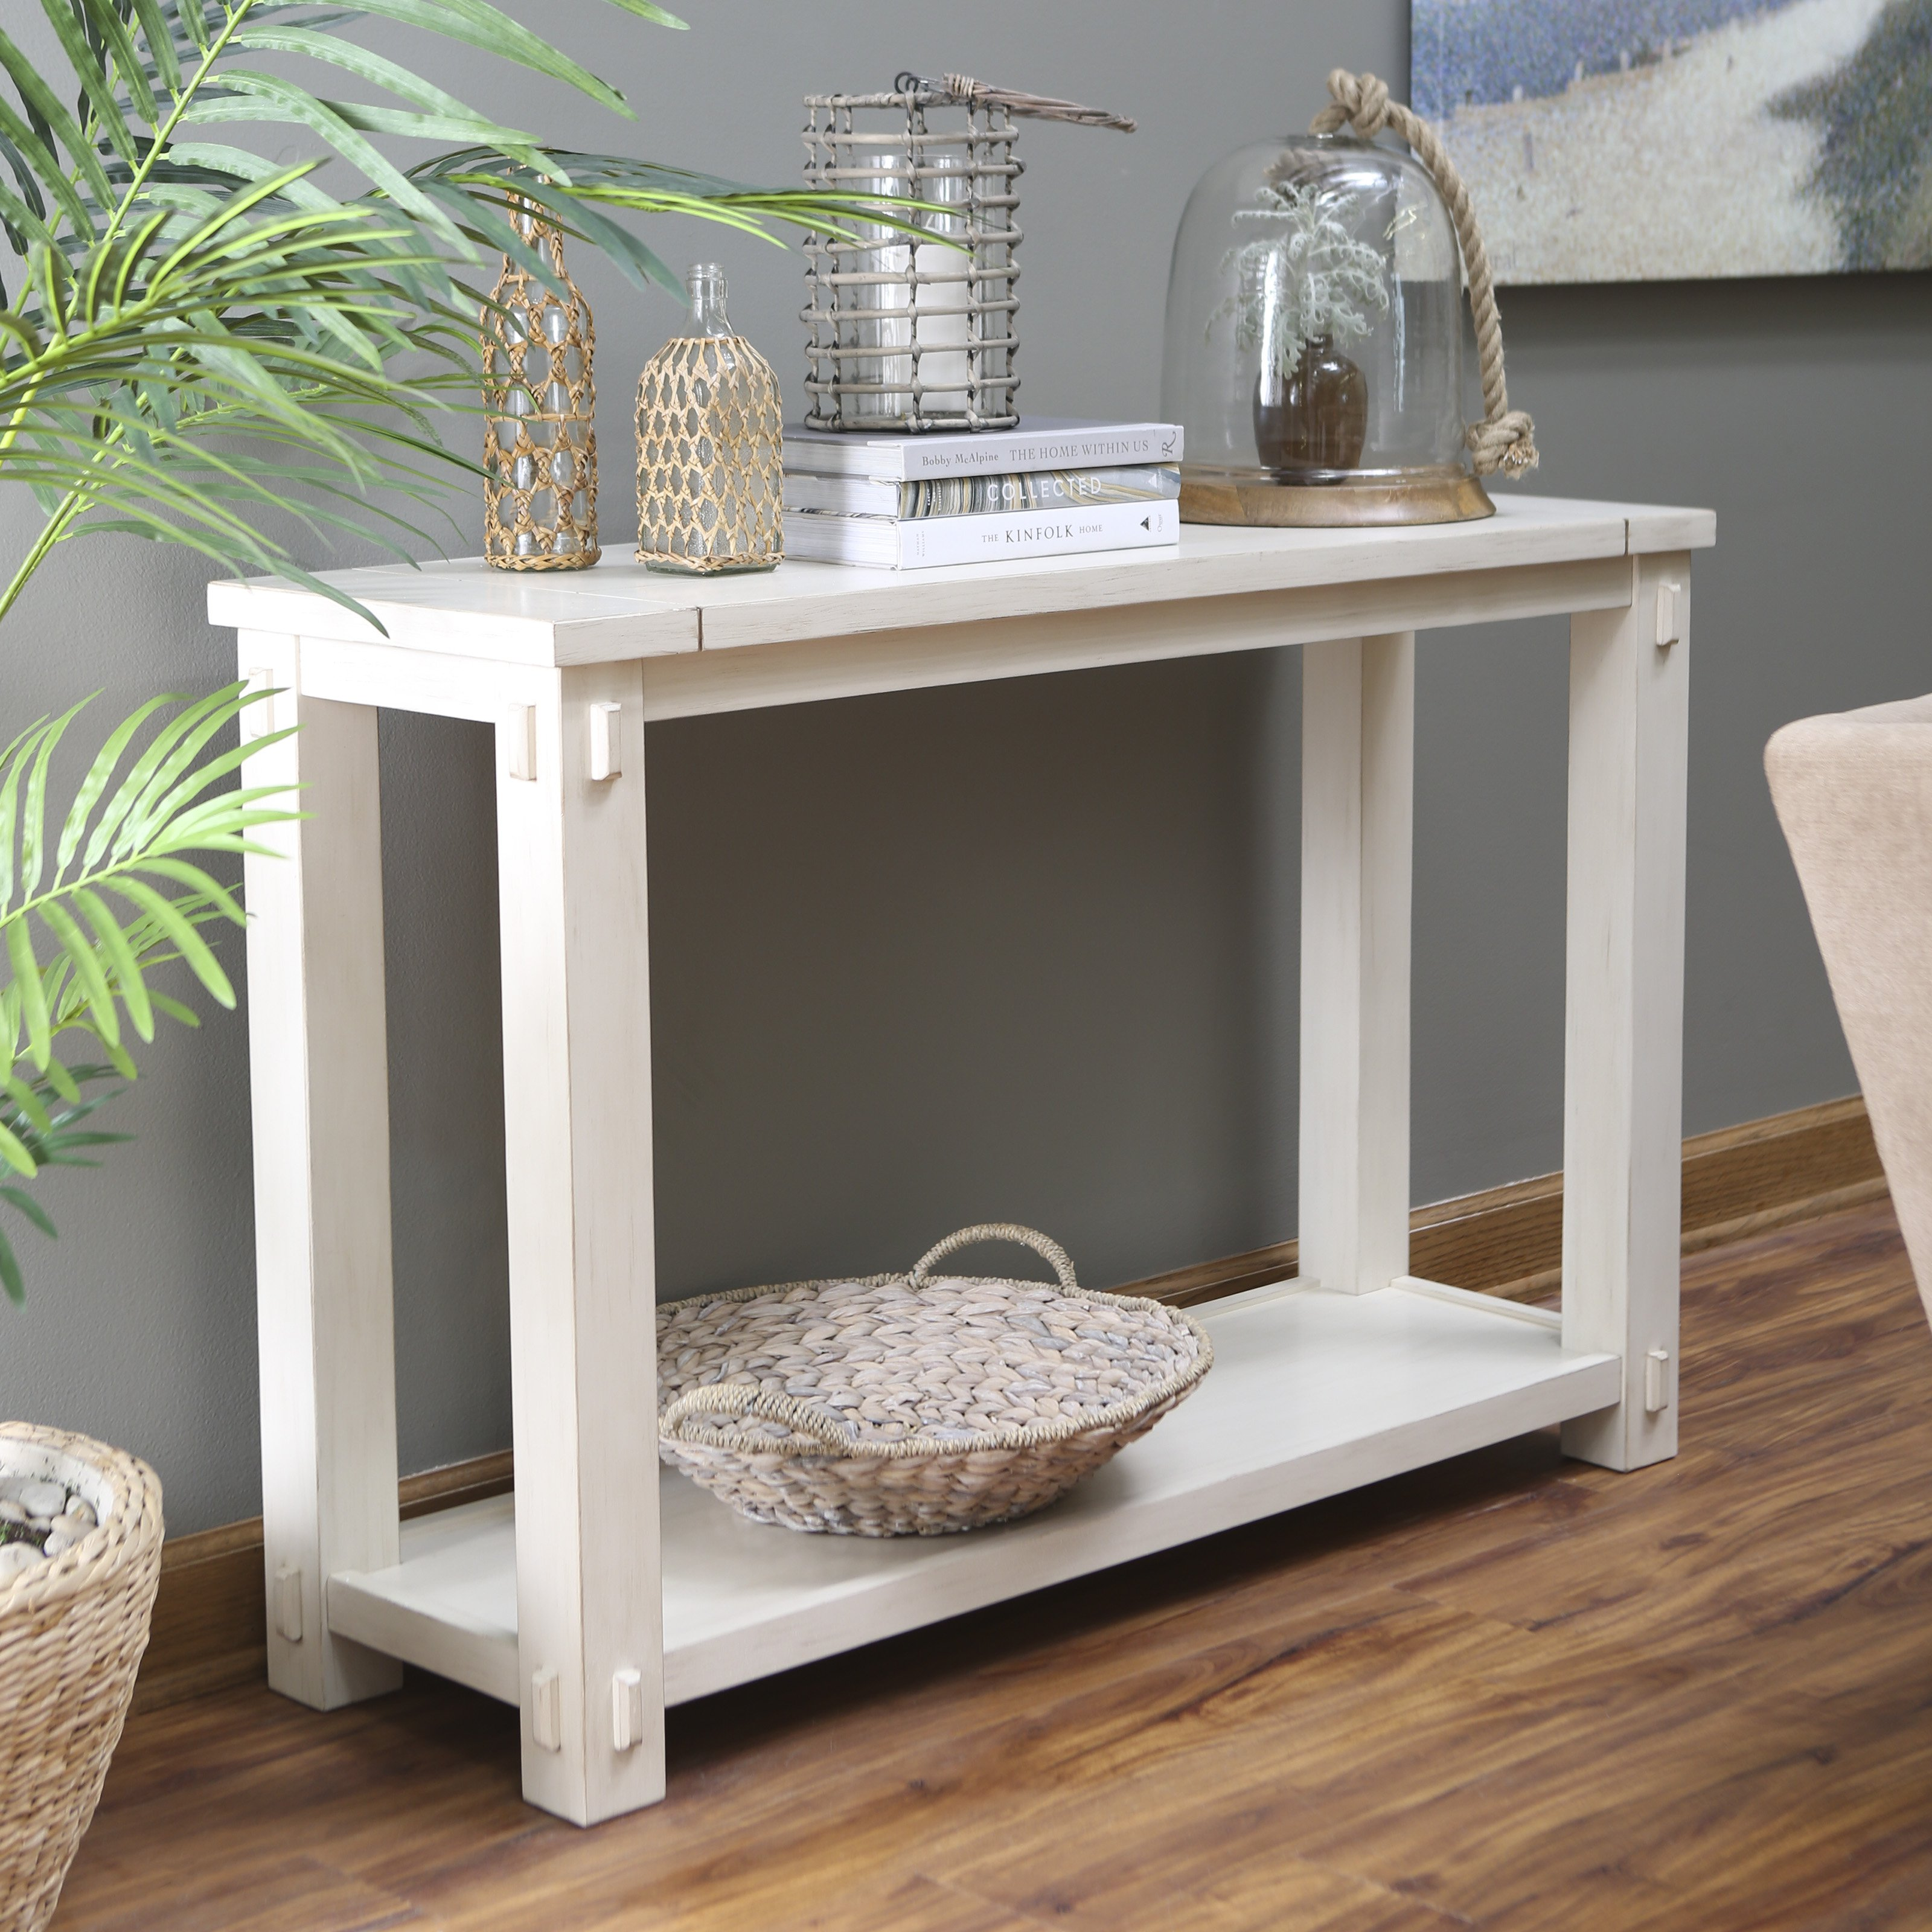 console table design eco friendly solid wood made out narra craftsman rectangle white stained wooden with lower shelf adorable furniture antique oak accent full size ikea